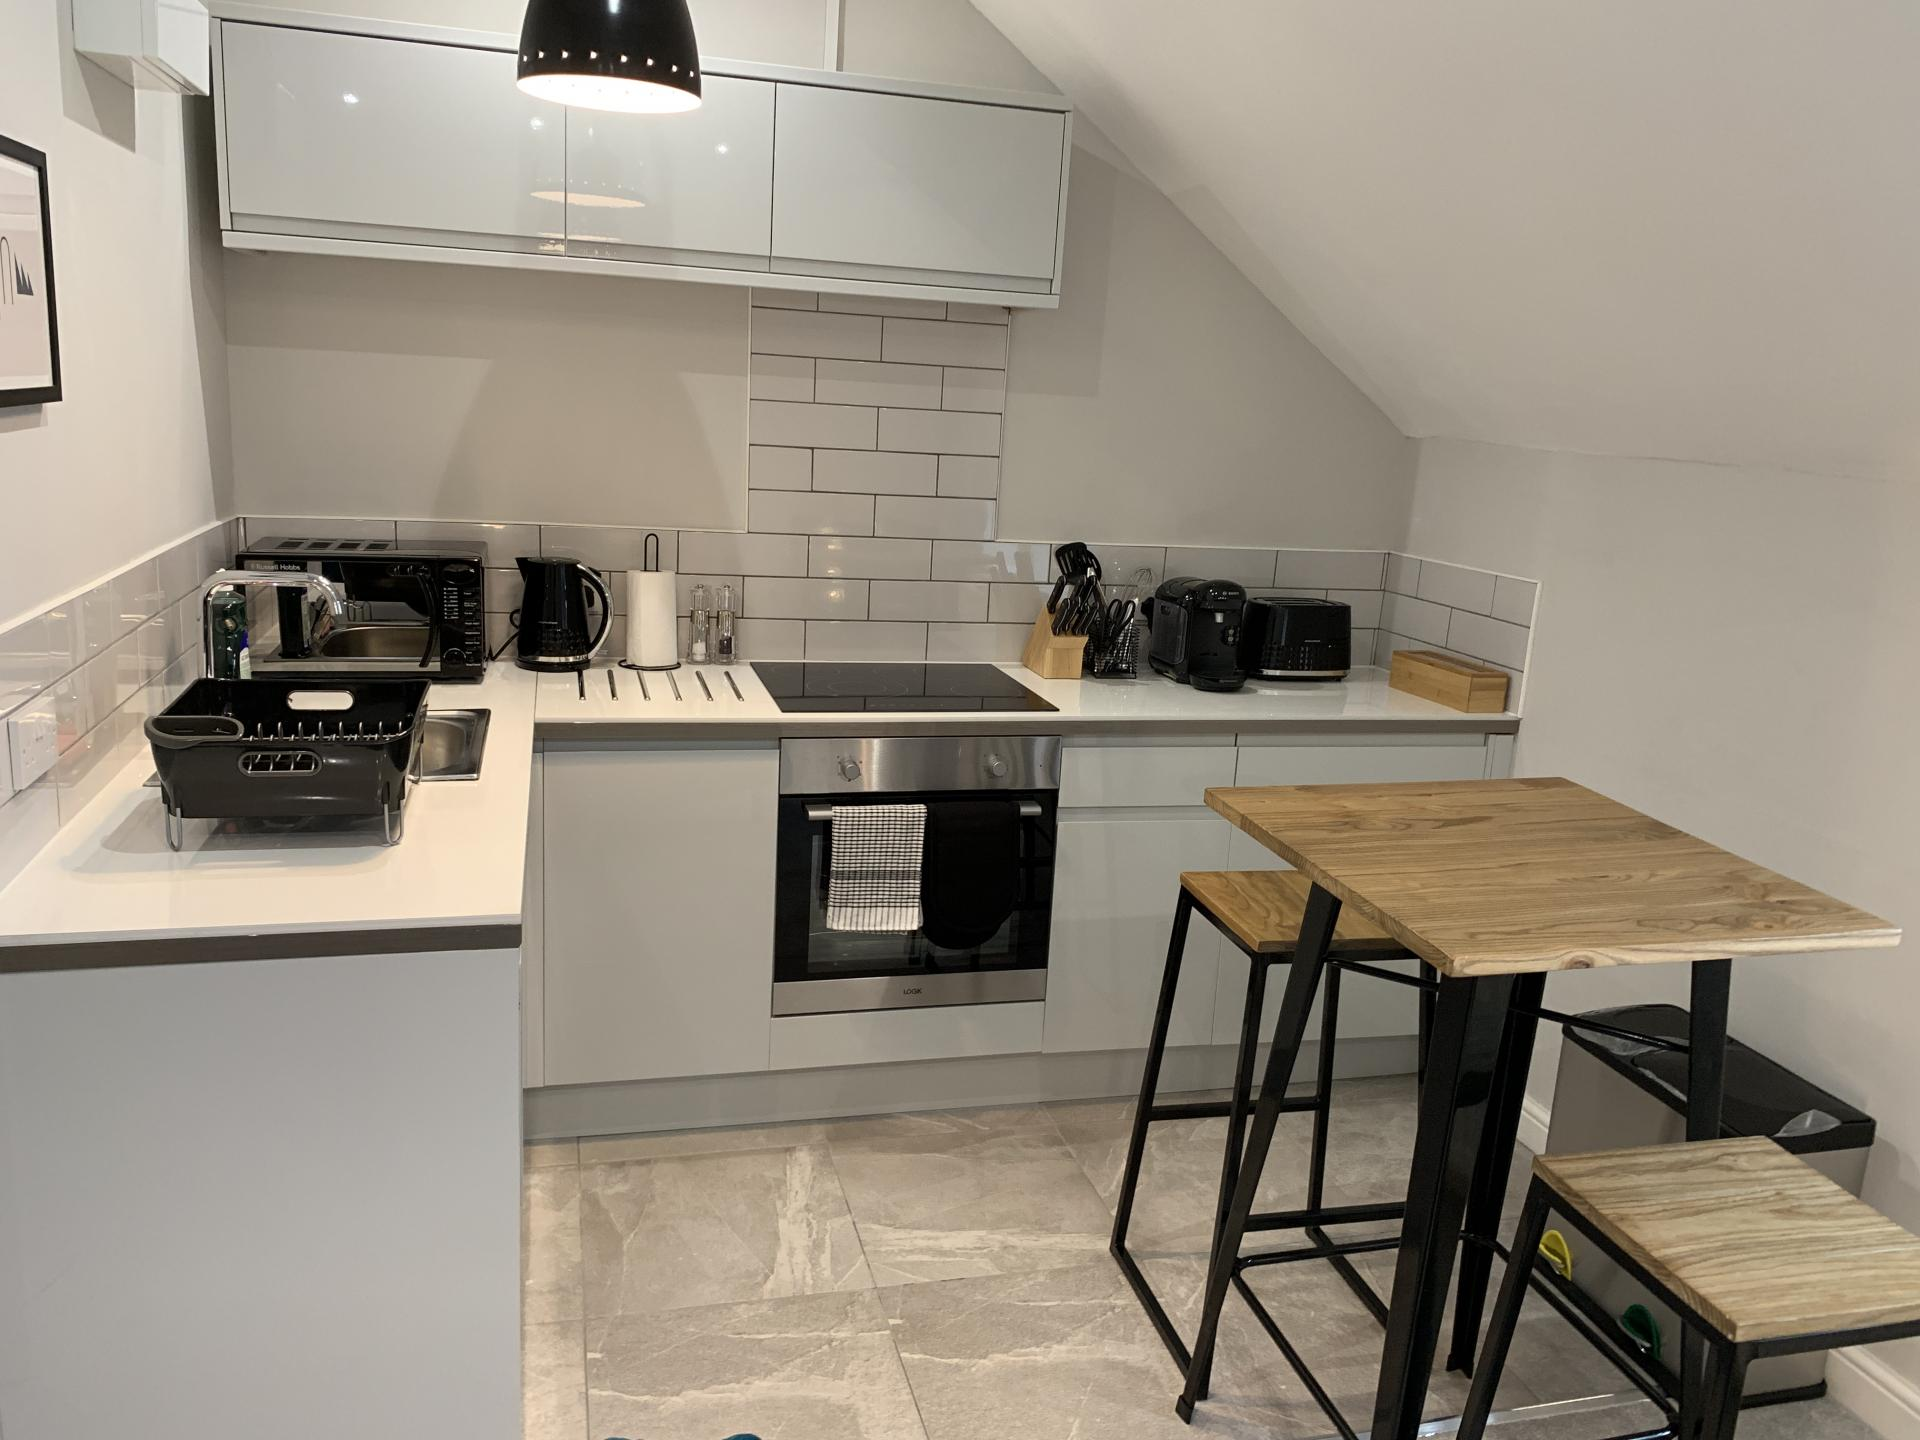 Kitchen at Victoria House Serviced Apartments, Victoria Park, Cardiff - Citybase Apartments